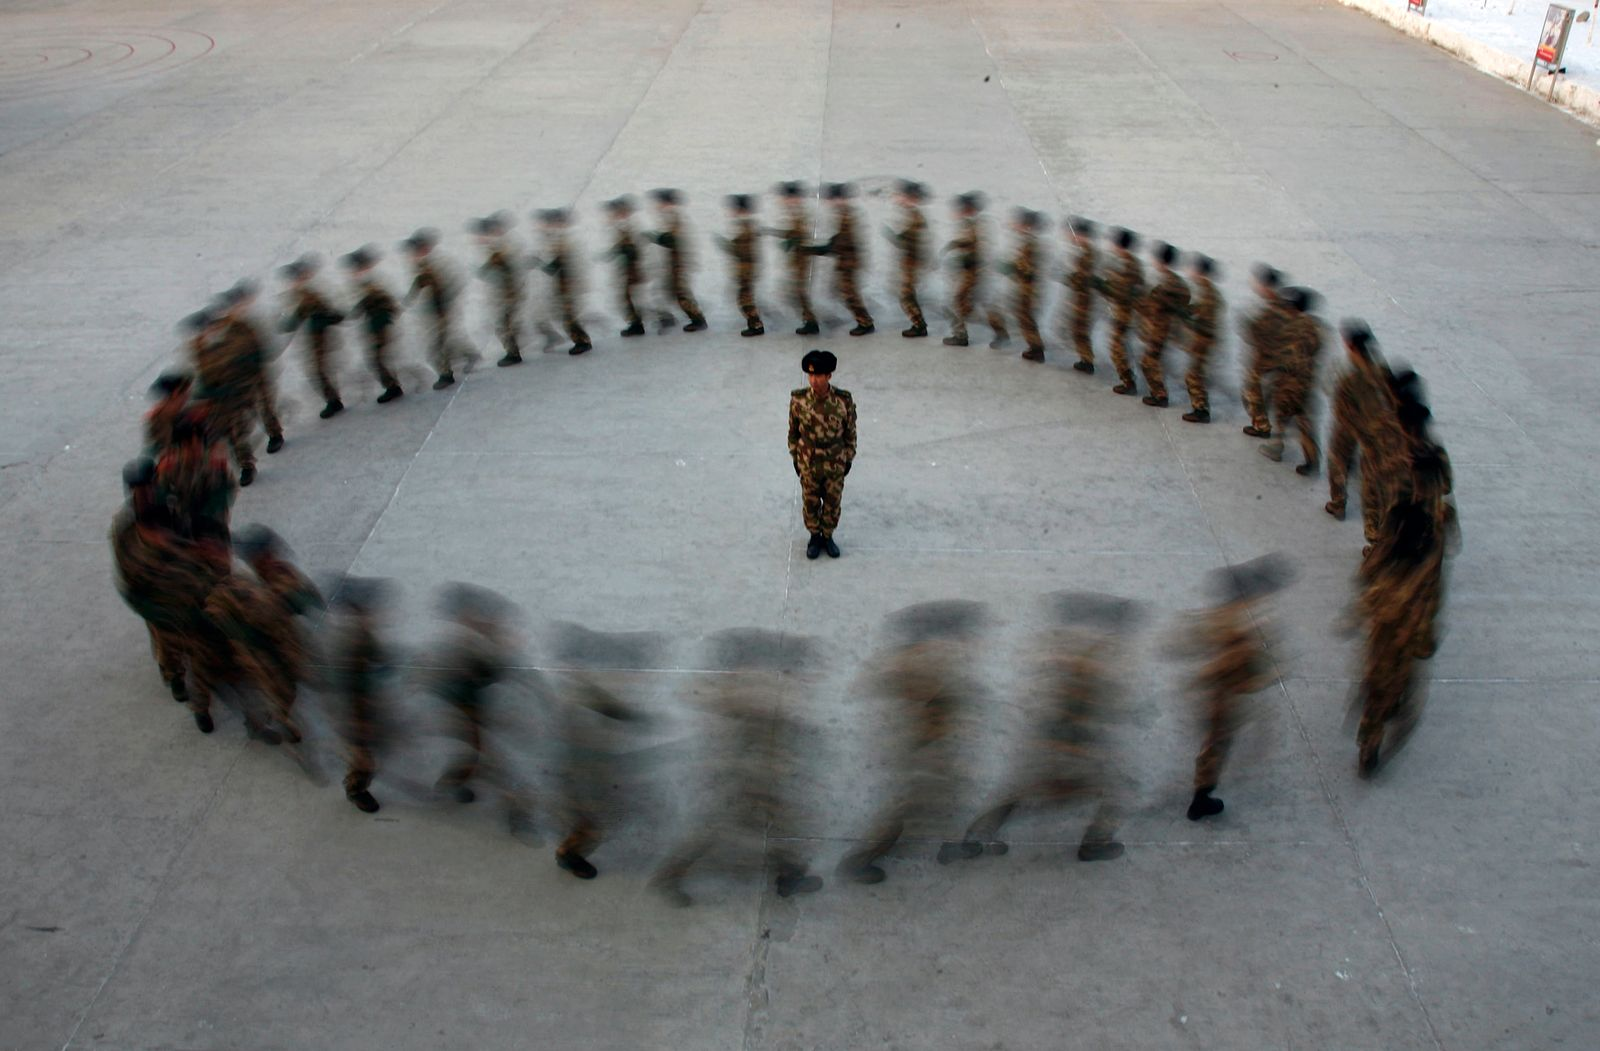 A commander watches as recruits of paramilitary police run in a circle during a training at a military base in Hami